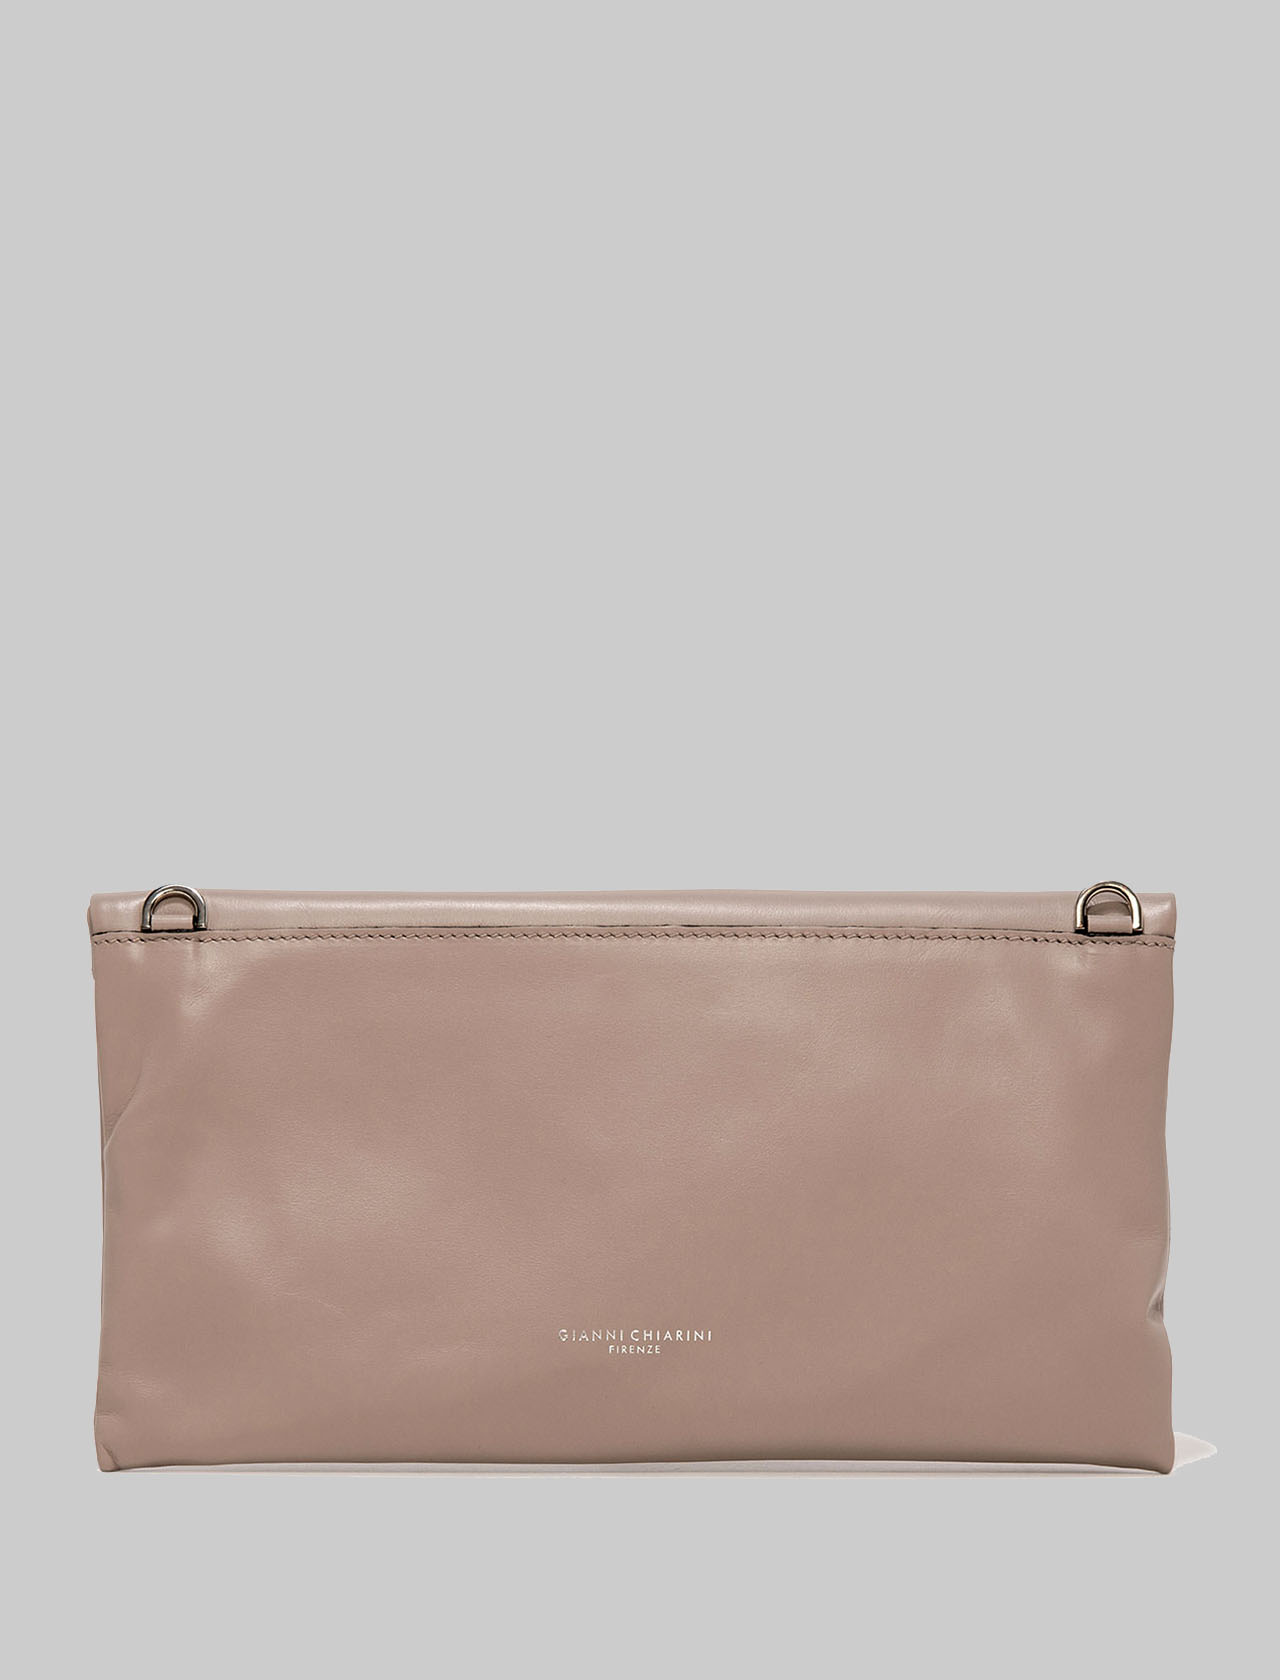 Cherry Woman's Clutch Bag In Powder Pink Smooth Leather With Tone Removable Shoulder Strap Gianni Chiarini | Bags and backpacks | BS737510579